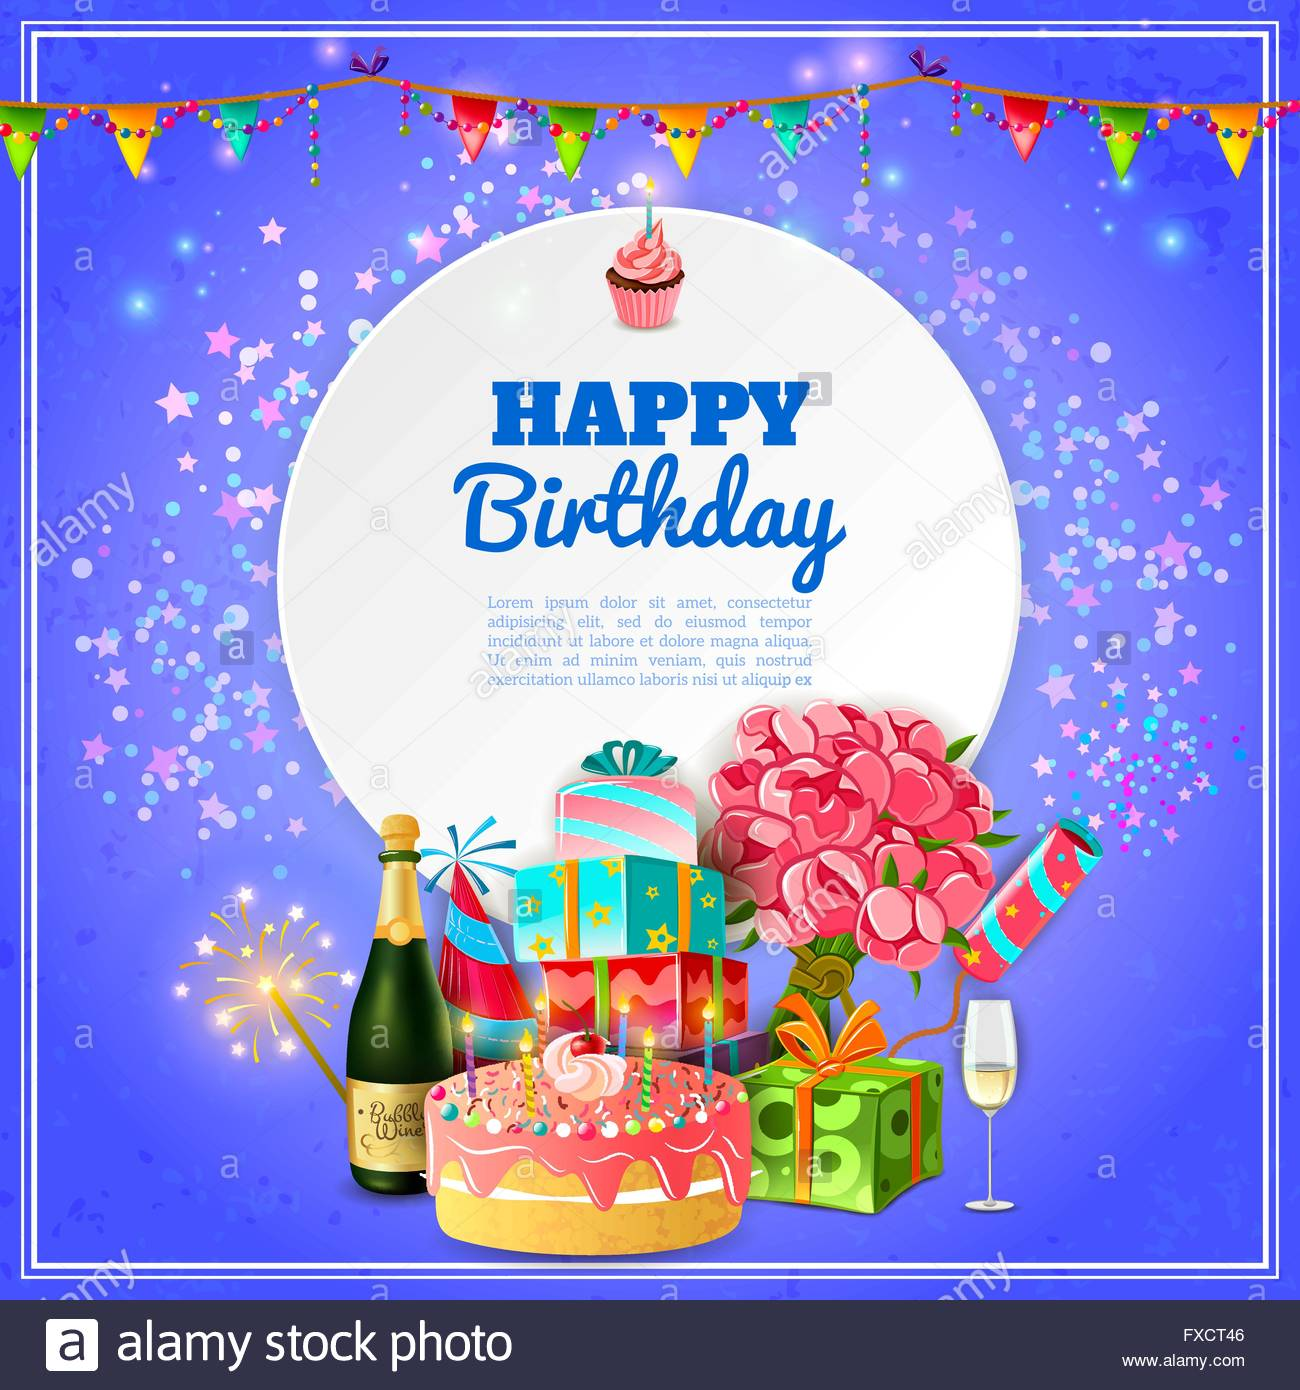 birthday party poster ; happy-birthday-party-background-poster-FXCT46